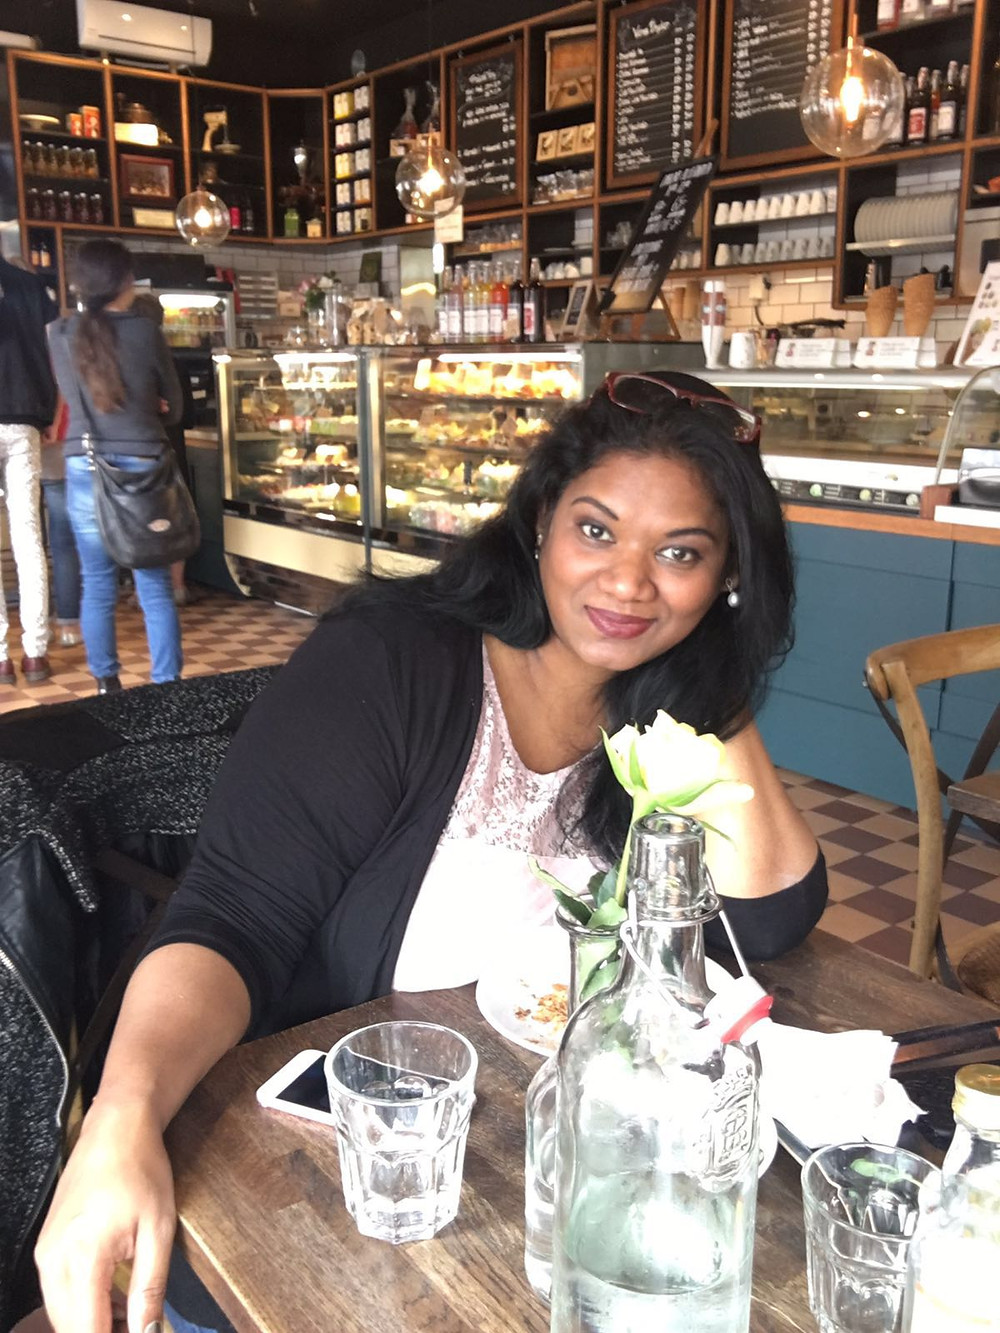 Photo of a woman sitting in a cafe looking into the camera and smiling.